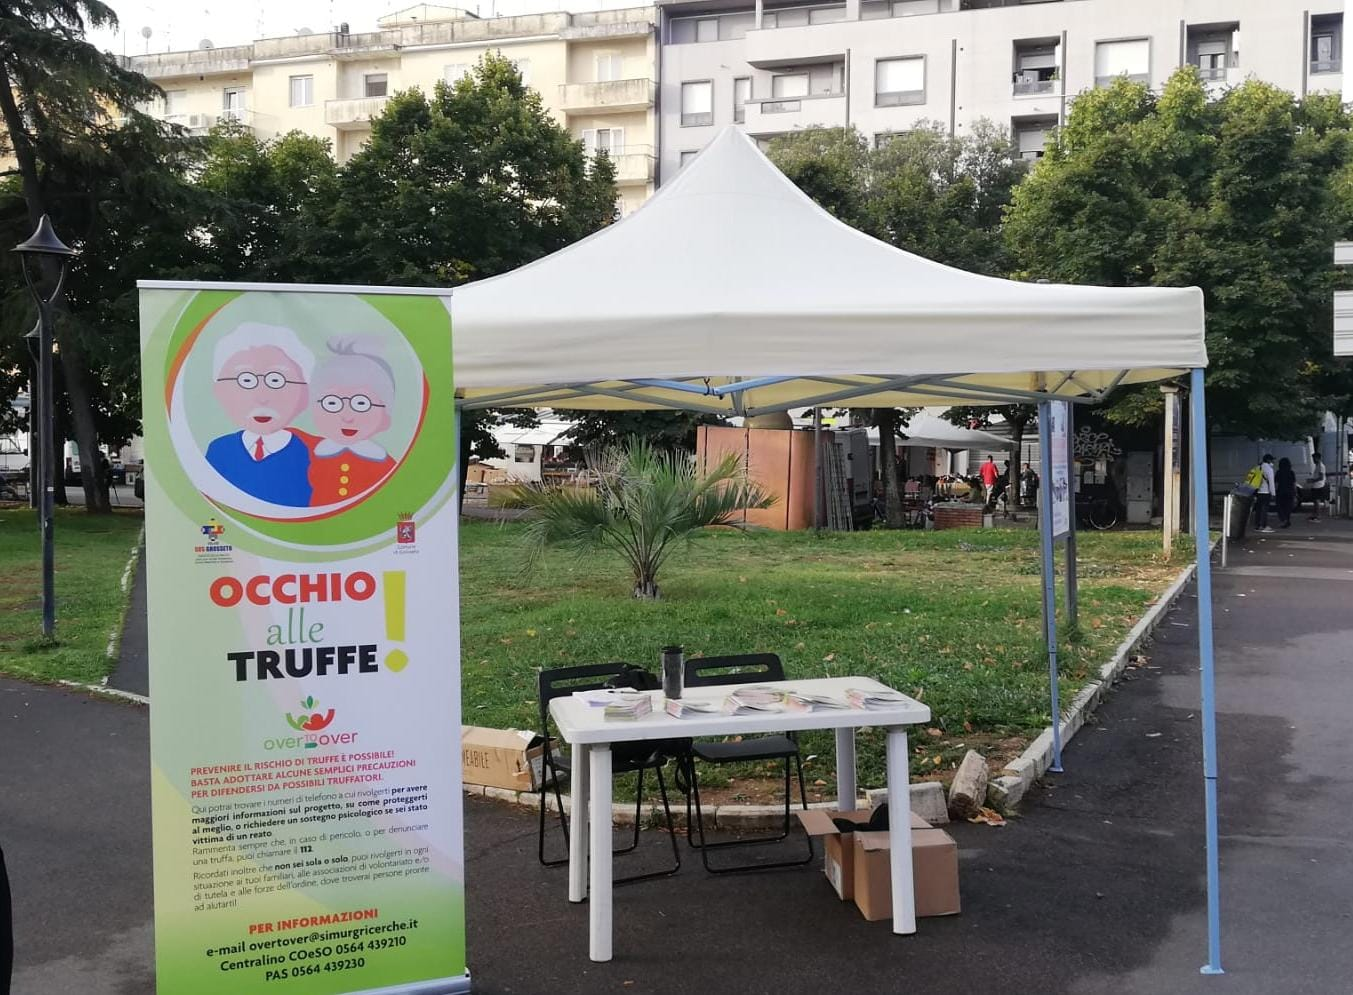 Infopoint-Over-To-Over-occhio-alle-truffe